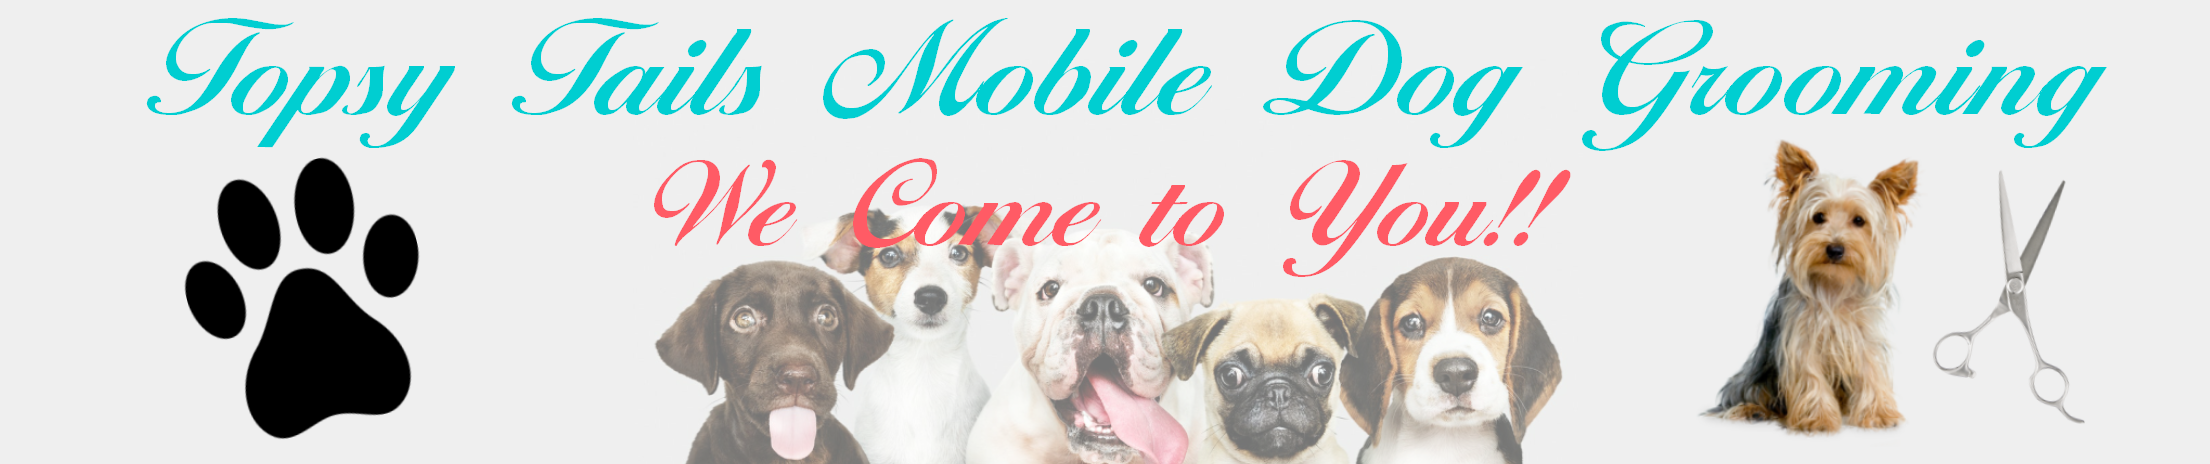 Topsy Tails Mobile Dog Grooming